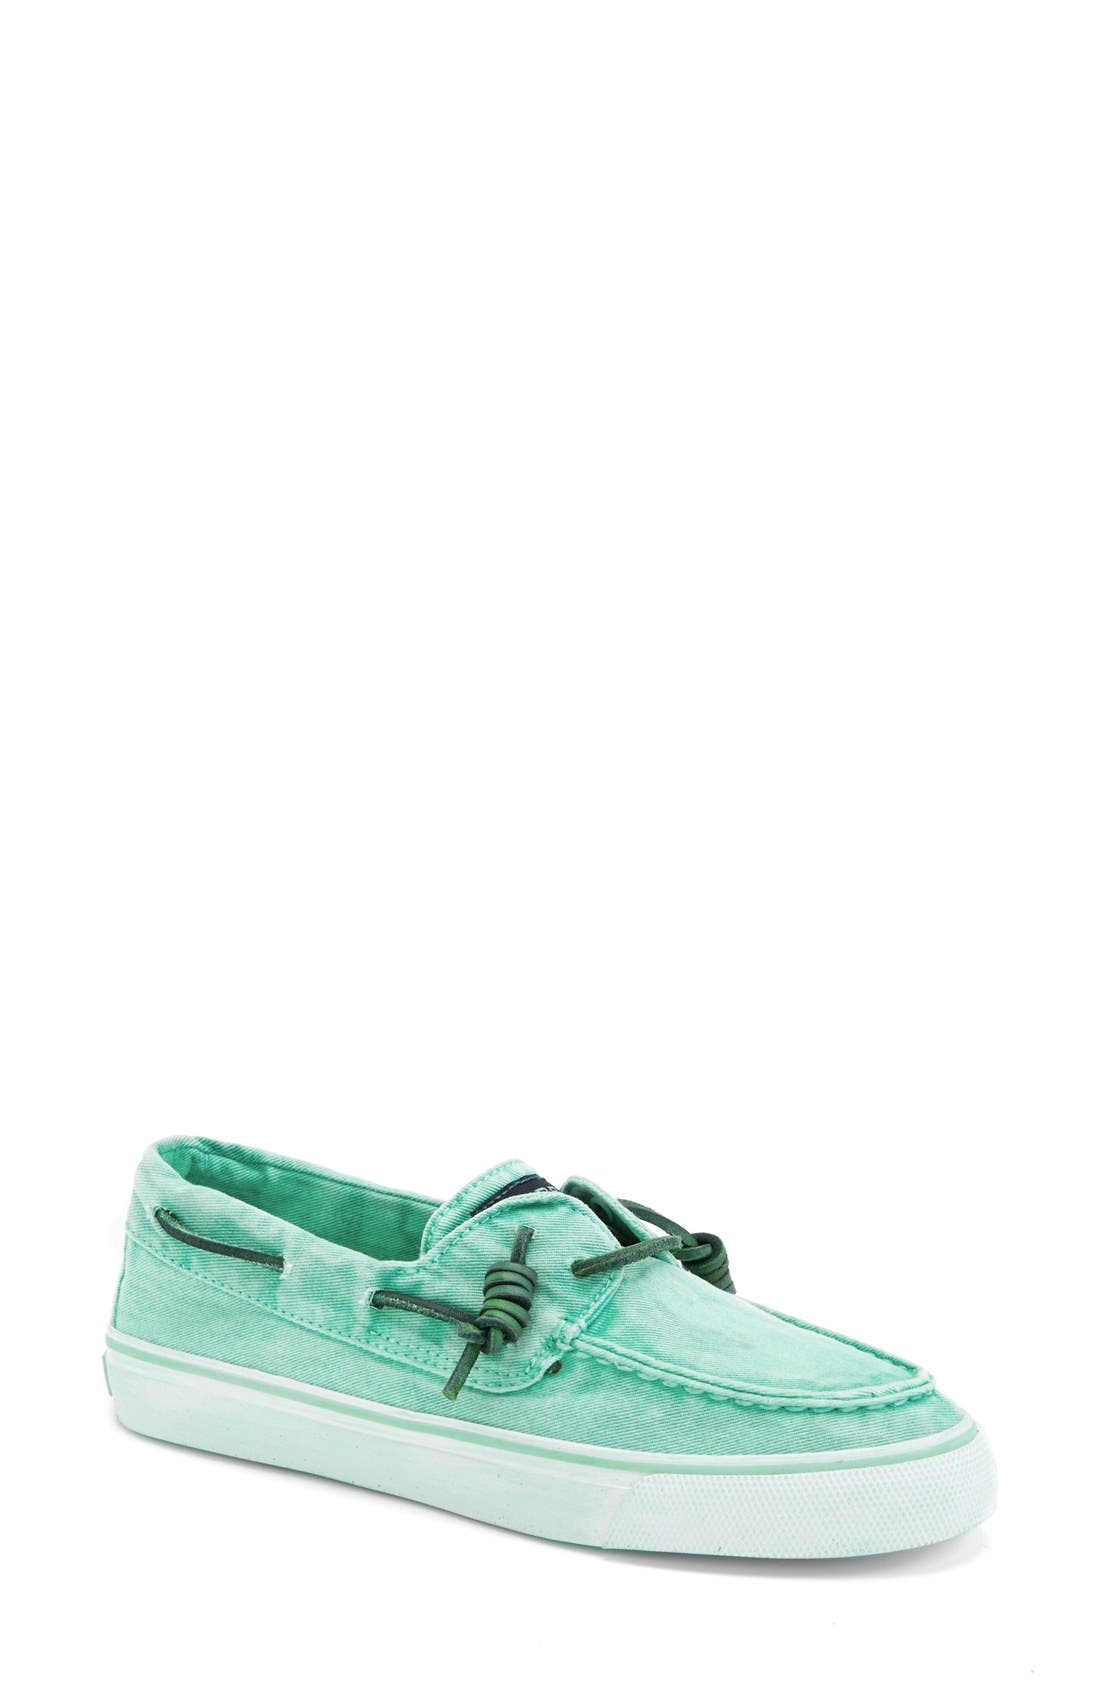 Top-Sider<sup>®</sup> 'Bahama' Sequined Boat Shoe,                             Main thumbnail 19, color,